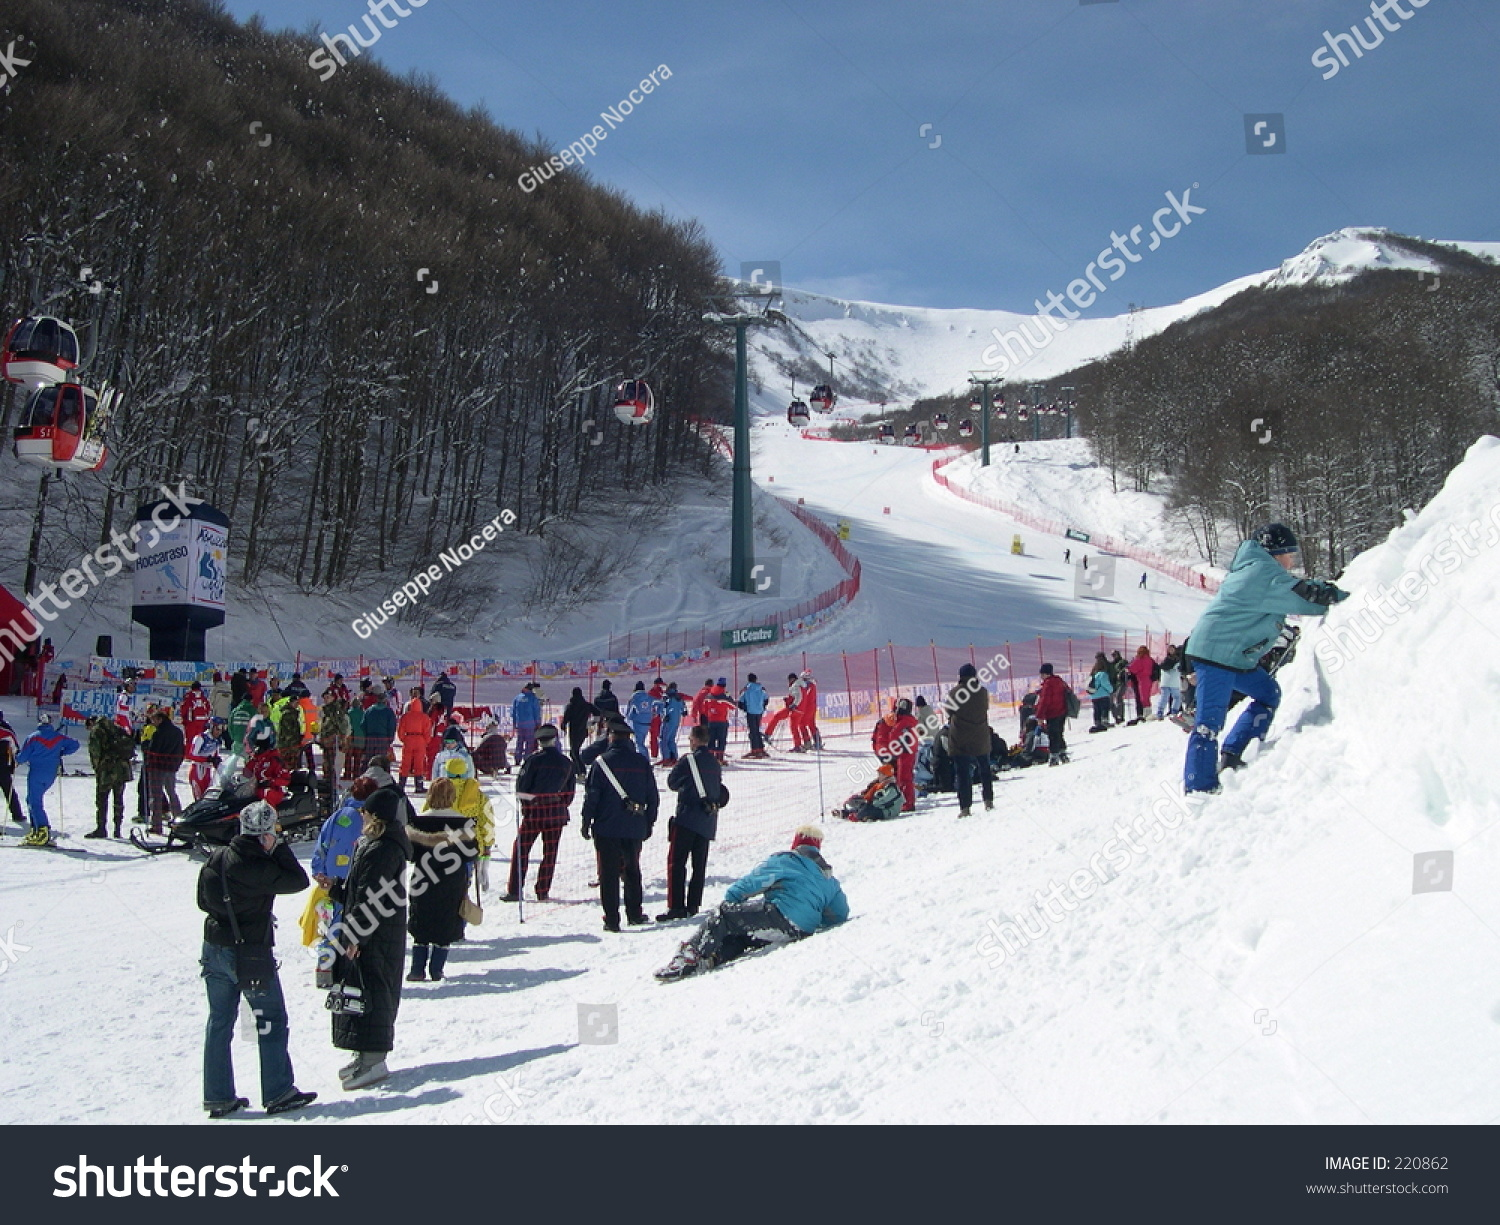 italy roccaraso ski world cup stock photo (edit now) 220862